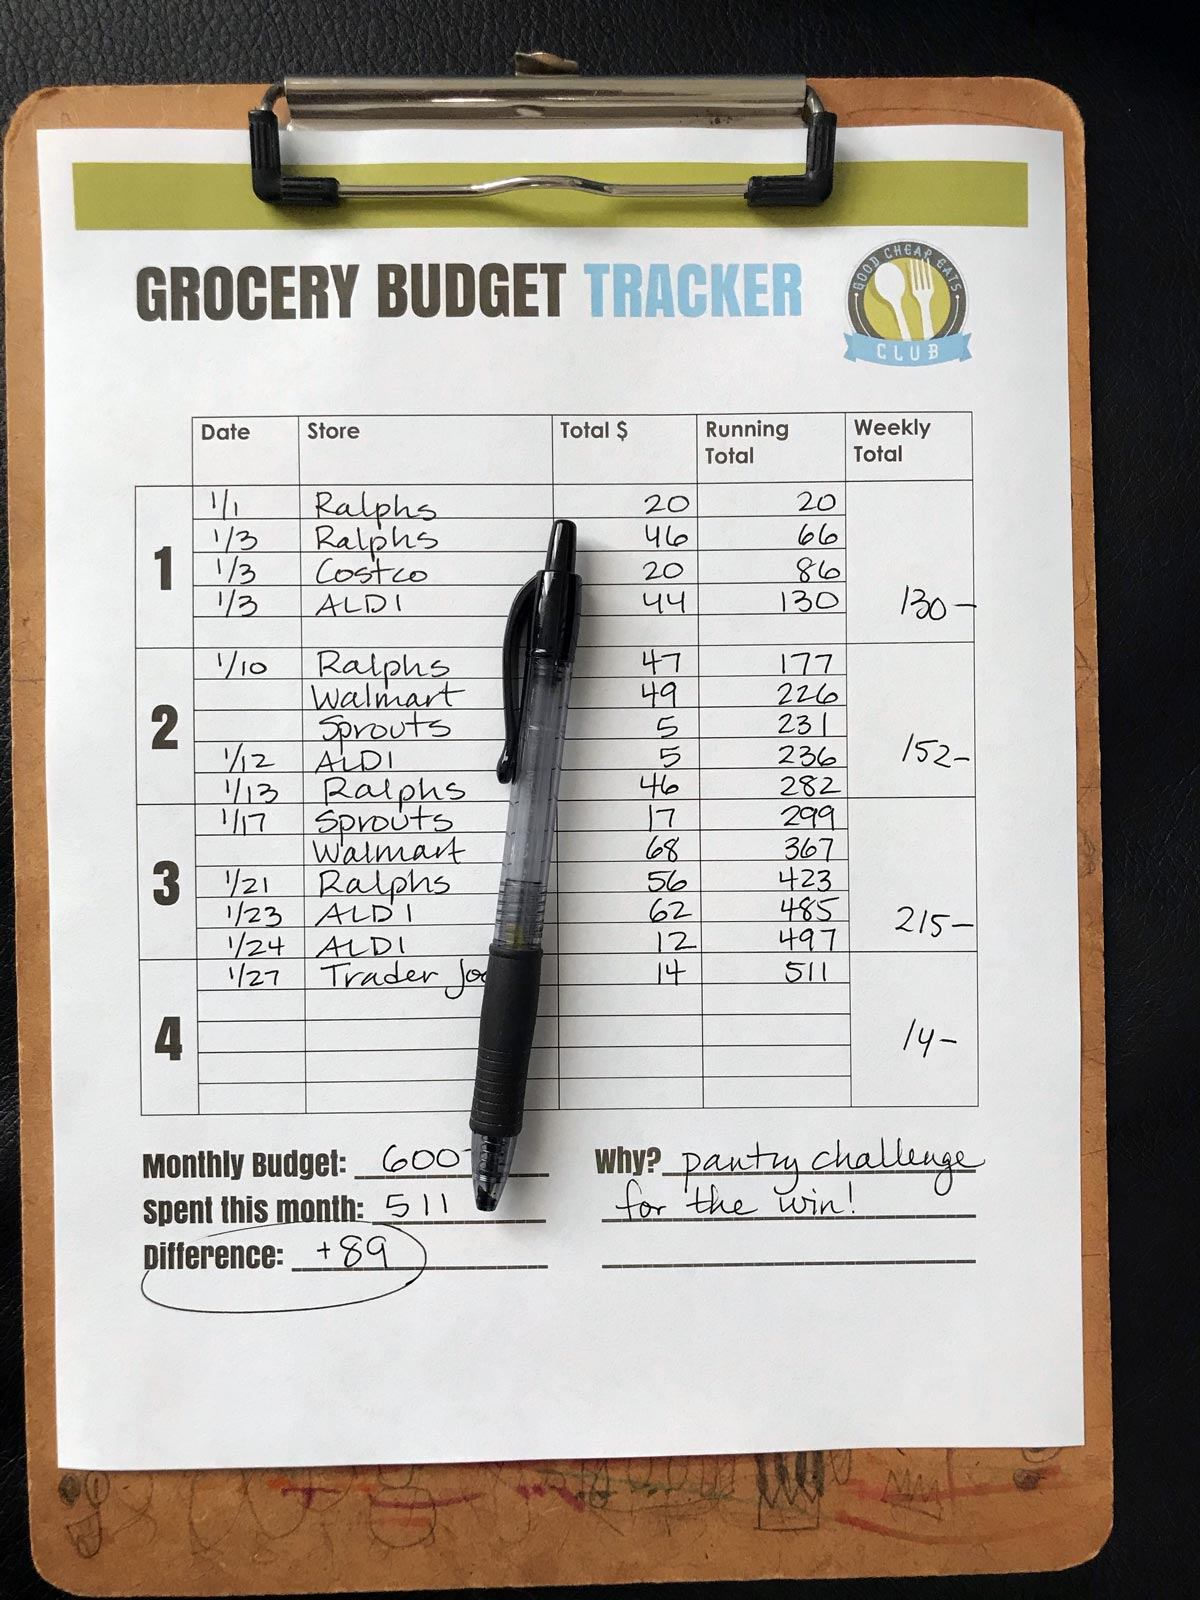 Clipboard with pen and the grocery budget tracker